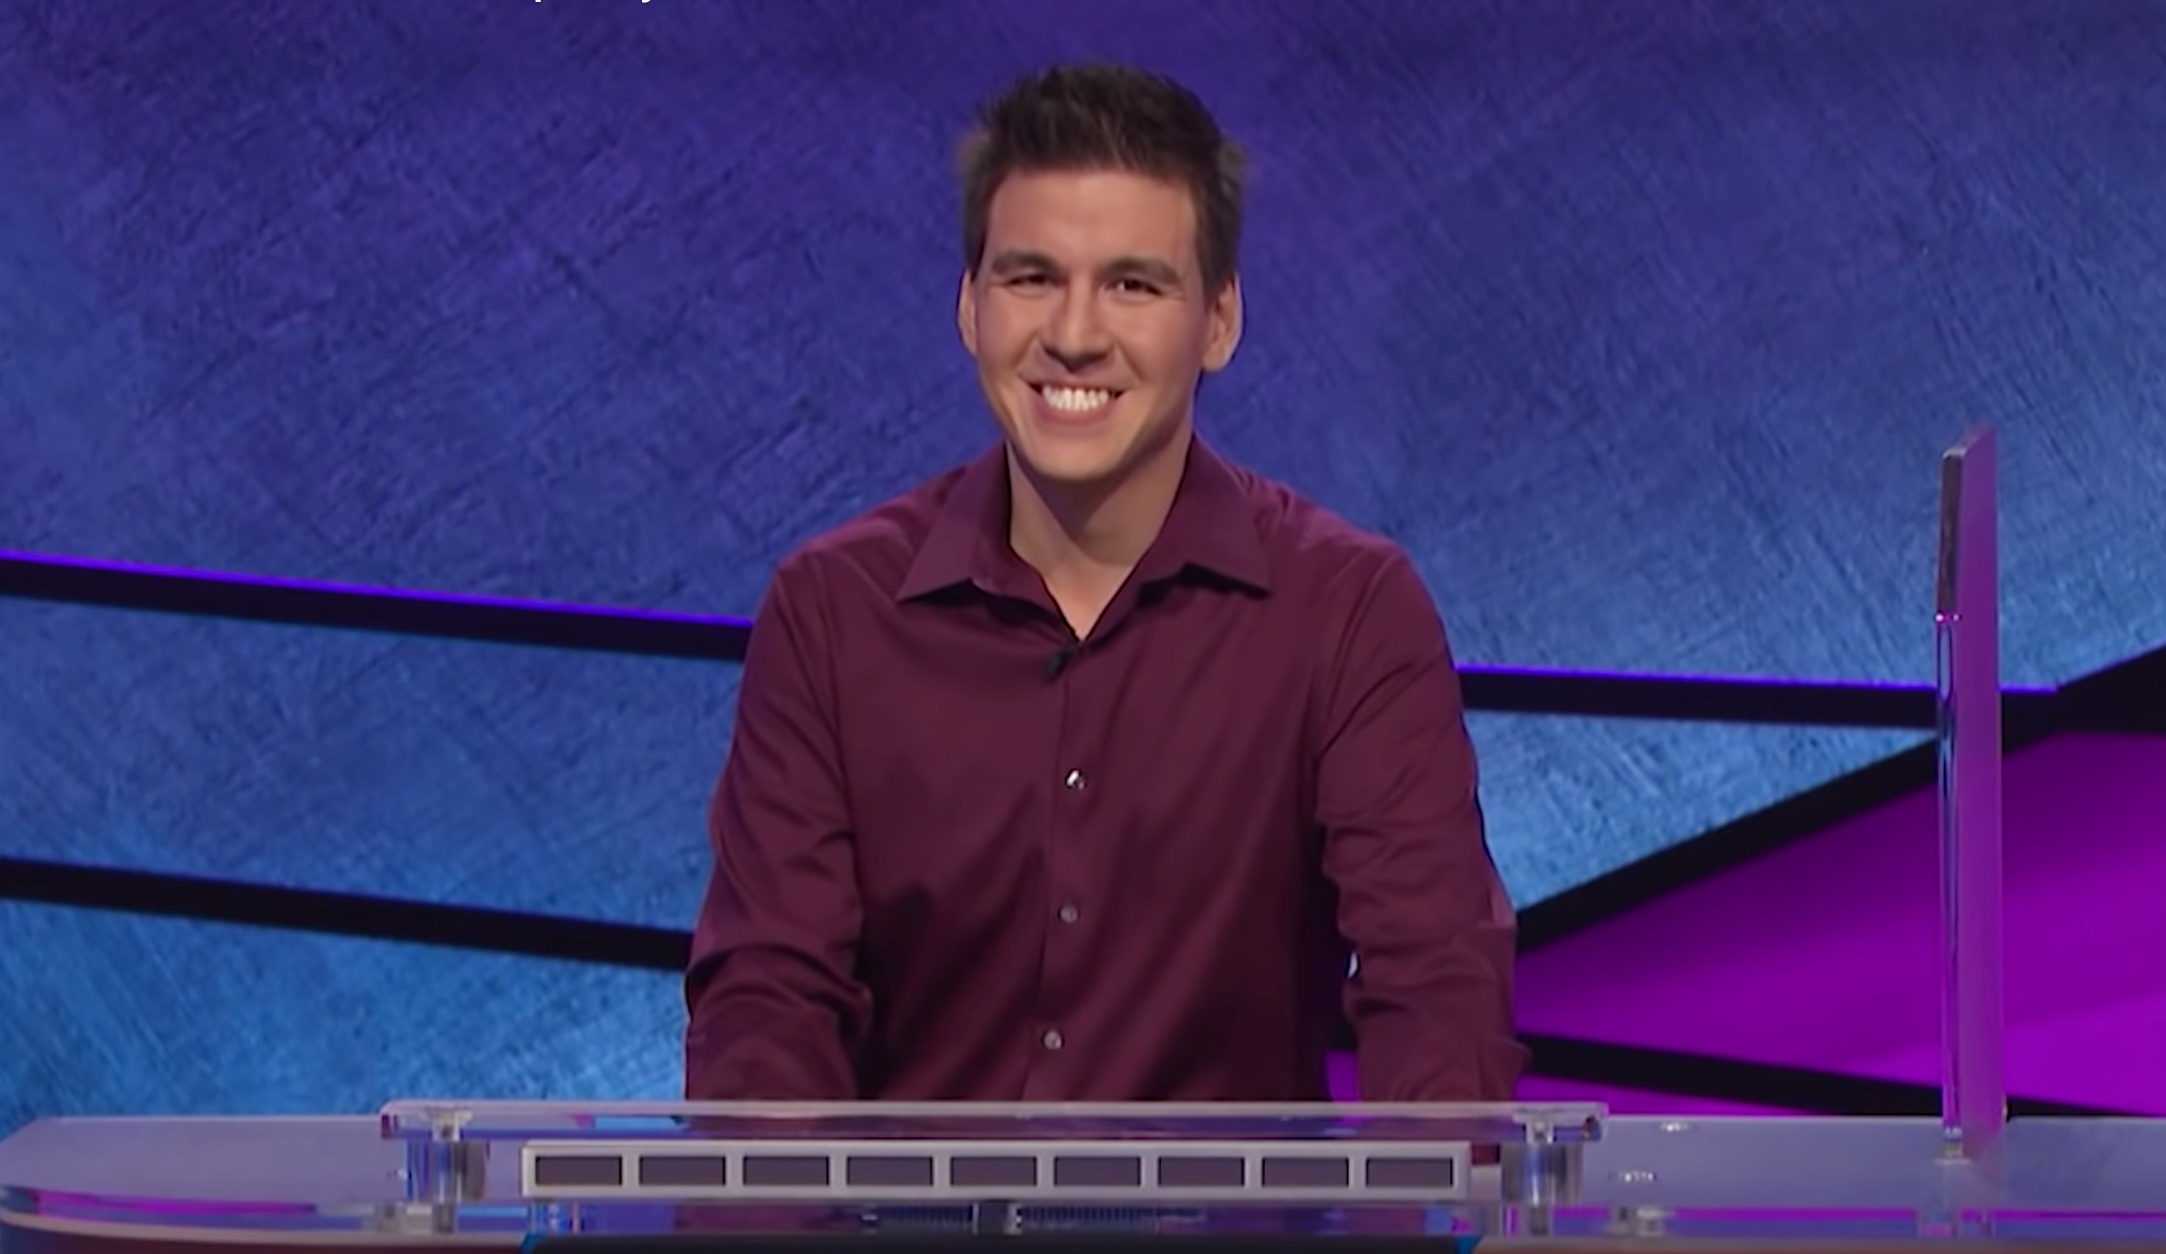 Jeopardy James Holzhauer